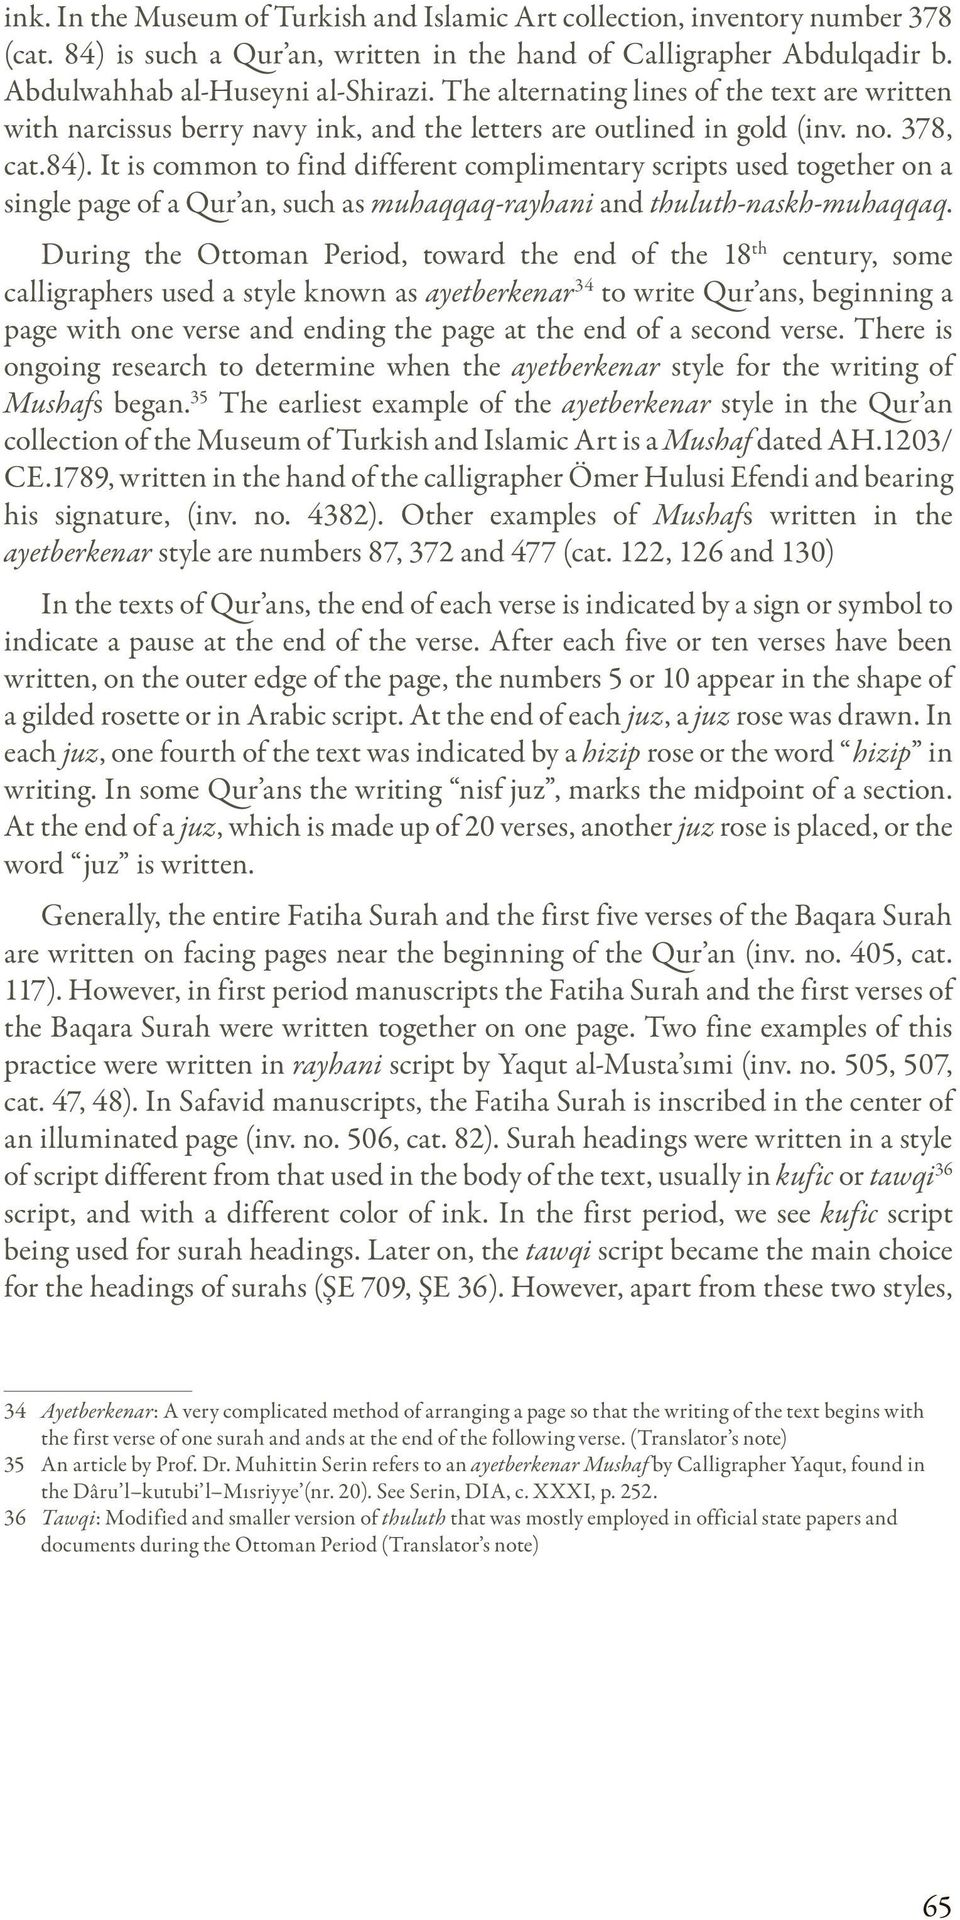 It is common to find different complimentary scripts used together on a single page of a Qur an, such as muhaqqaq-rayhani and thuluth-naskh-muhaqqaq.